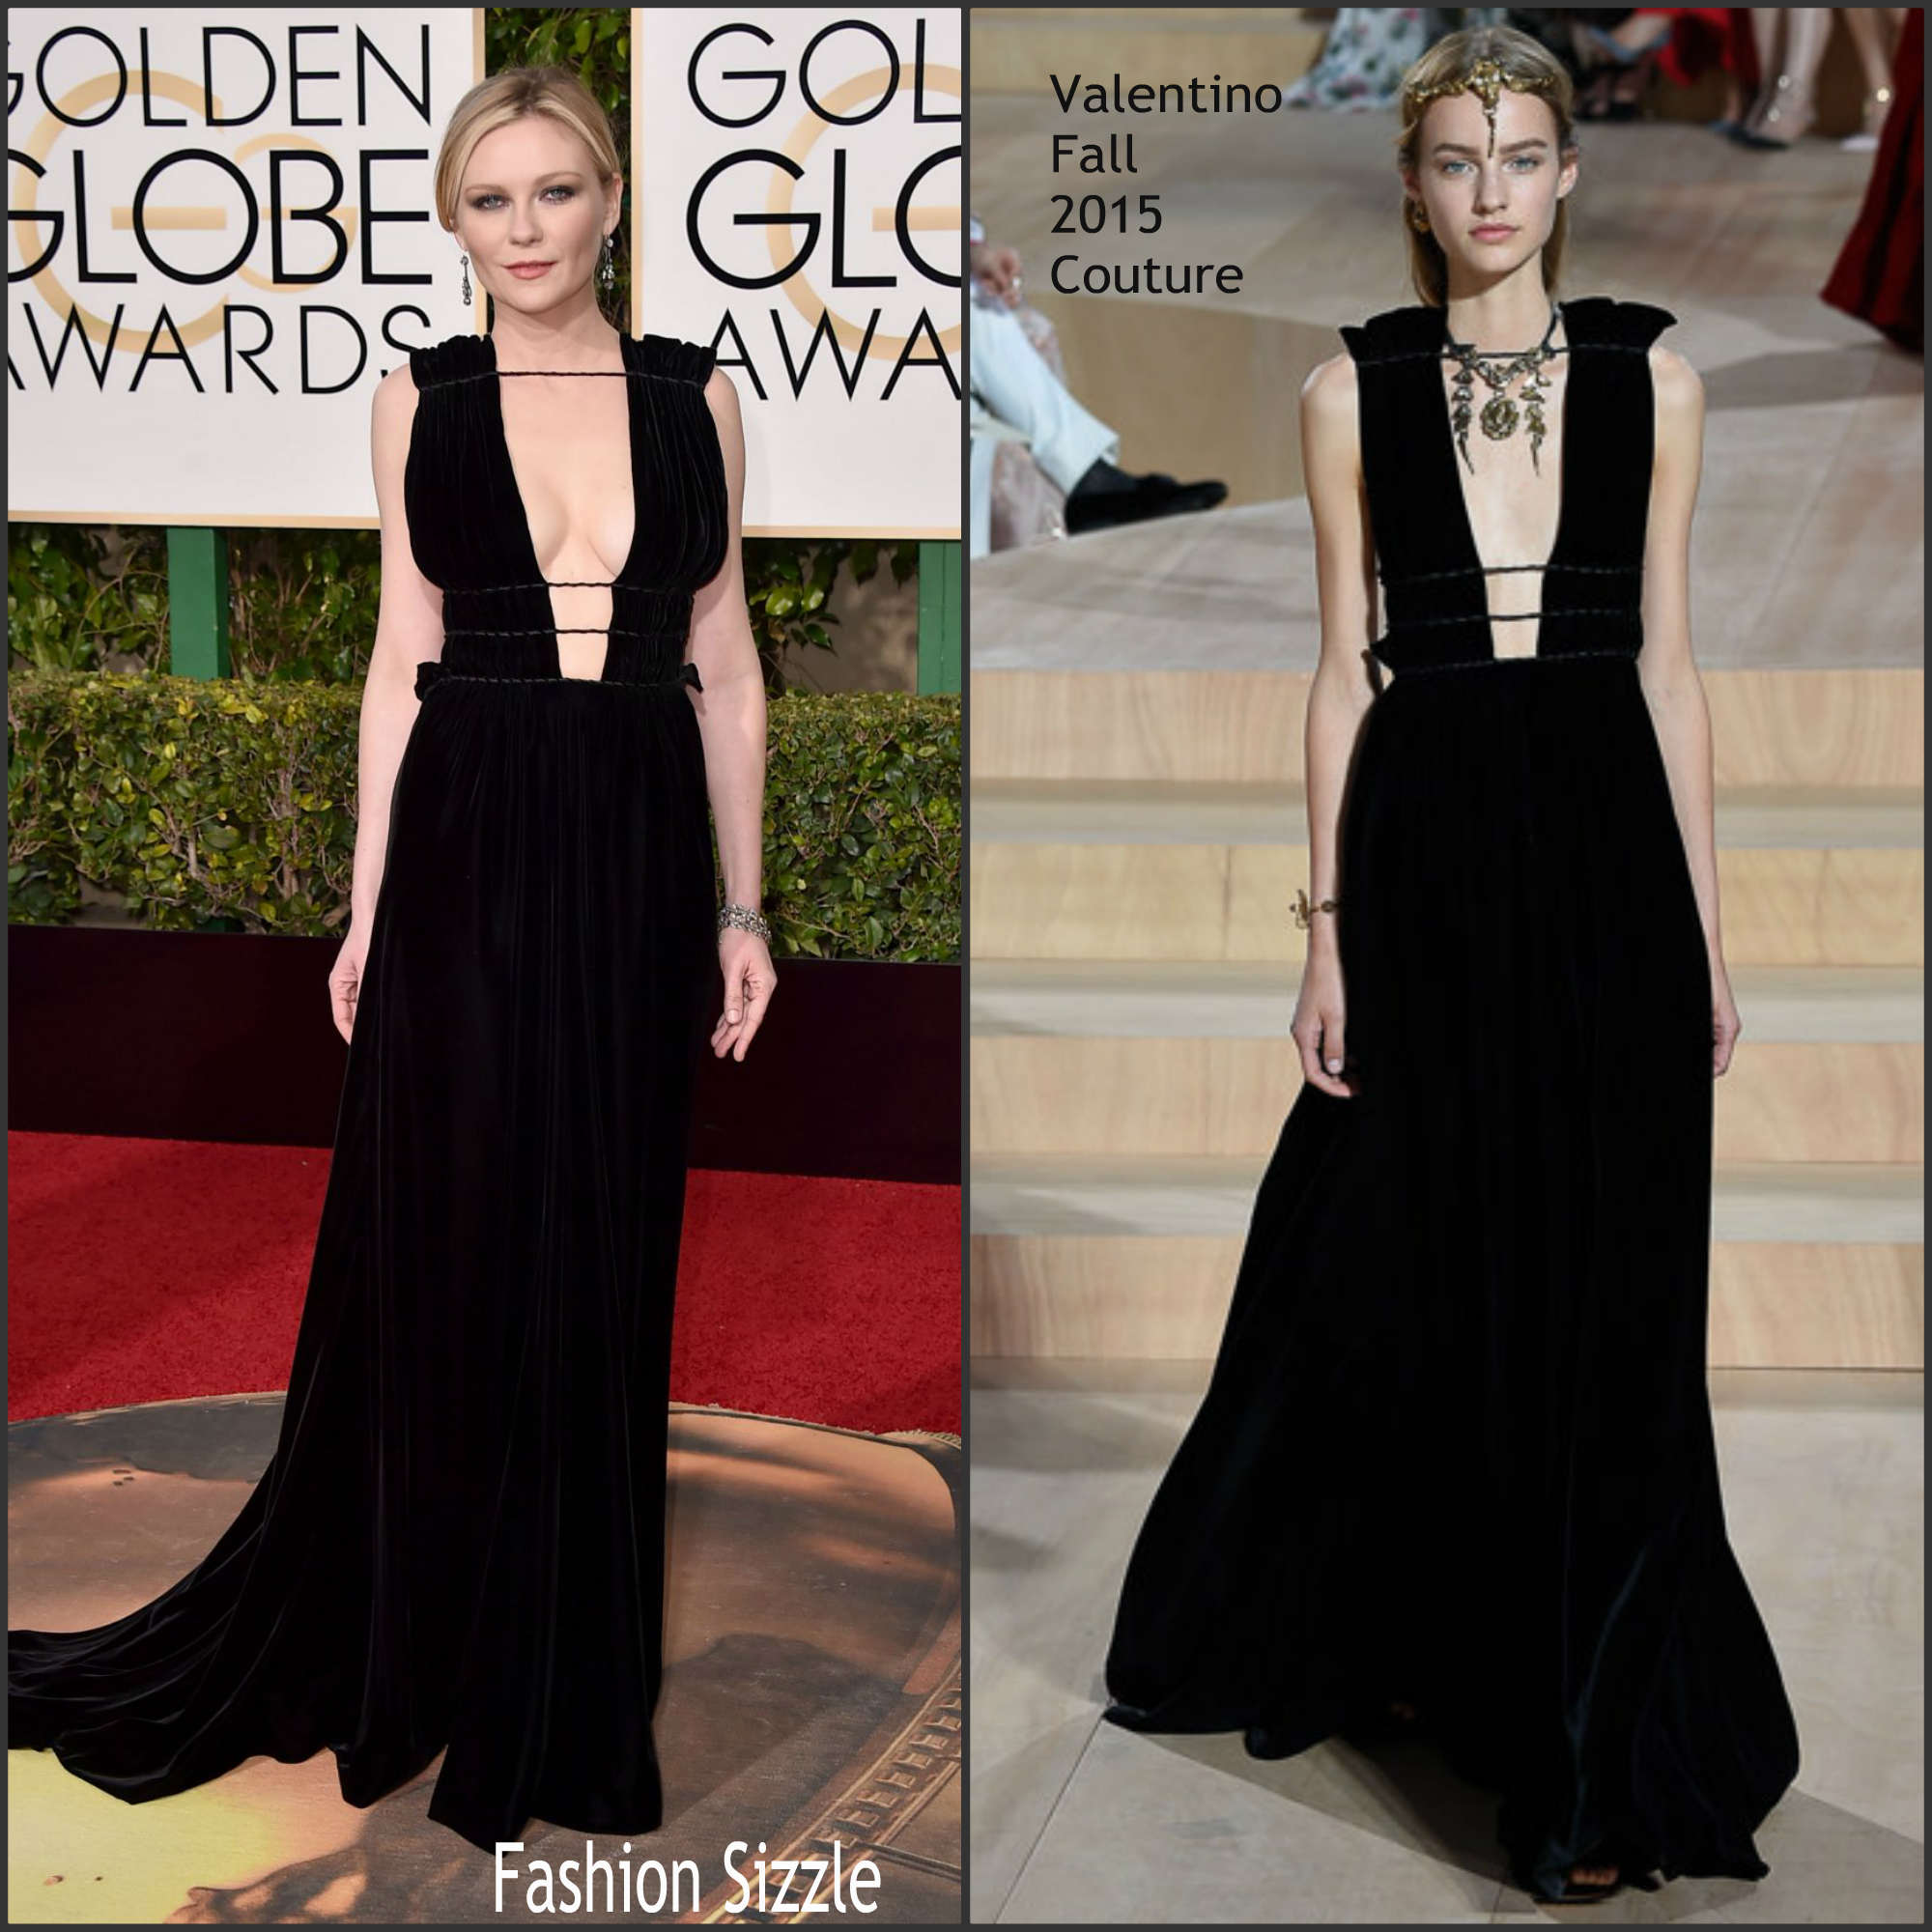 kirsten-dunst-in-valentino-2016-golden-globe-awards